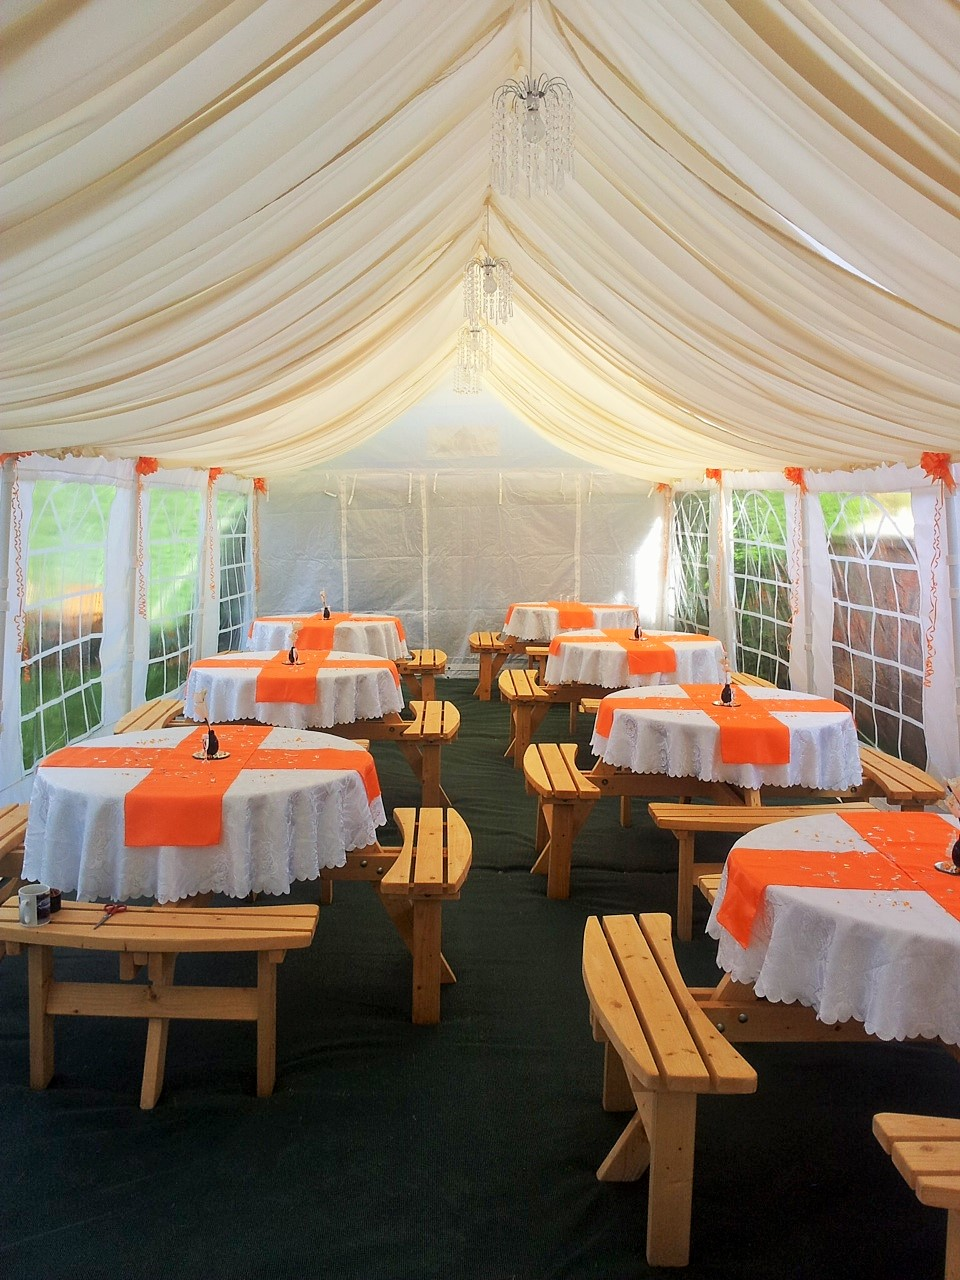 wedding chair covers doncaster vancouver mini garden marquee hire based in call 07731 510 685 for a roof lined jpg